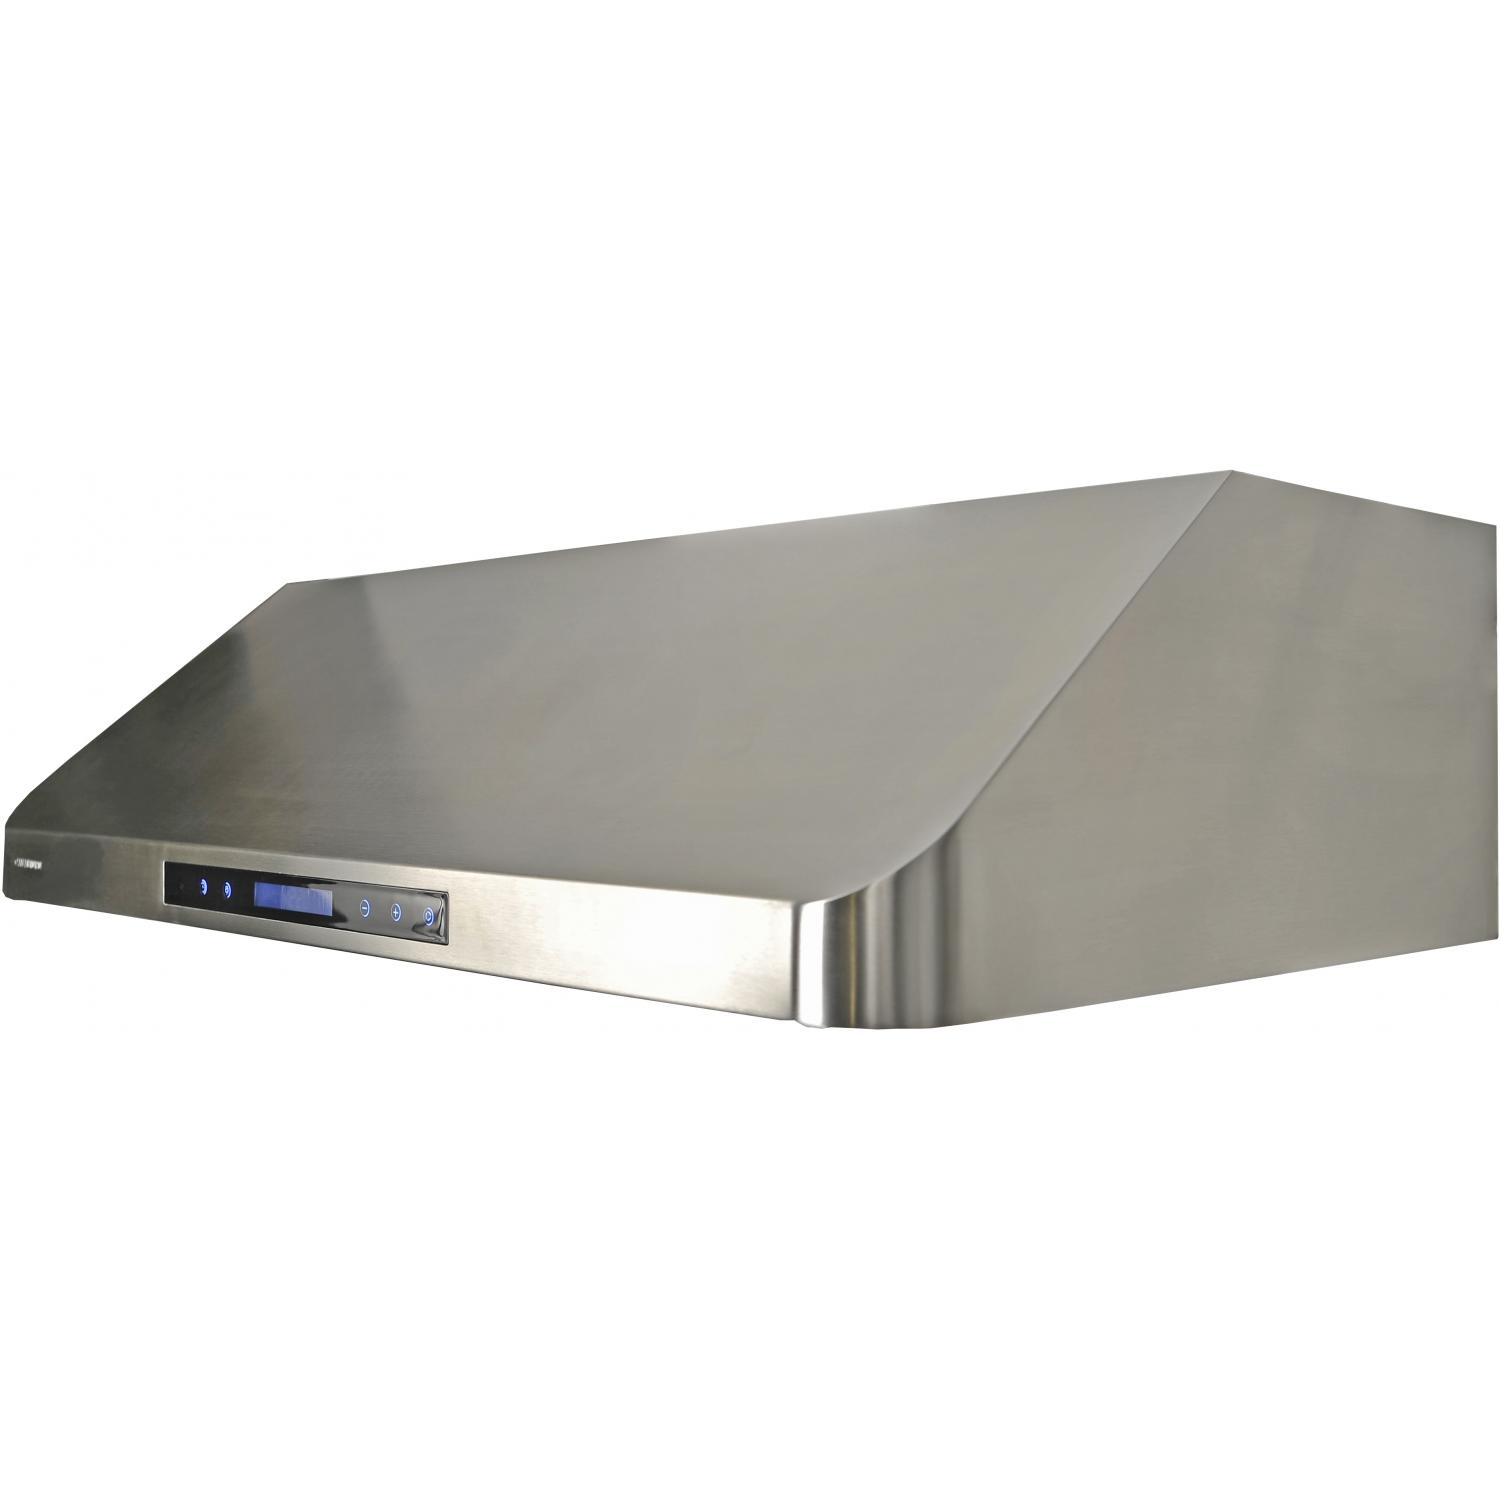 Cavaliere AirPRO 238 Professional Series 30-Inch 900 CFM Under Cabinet Range Hood - AP238-PS13-30